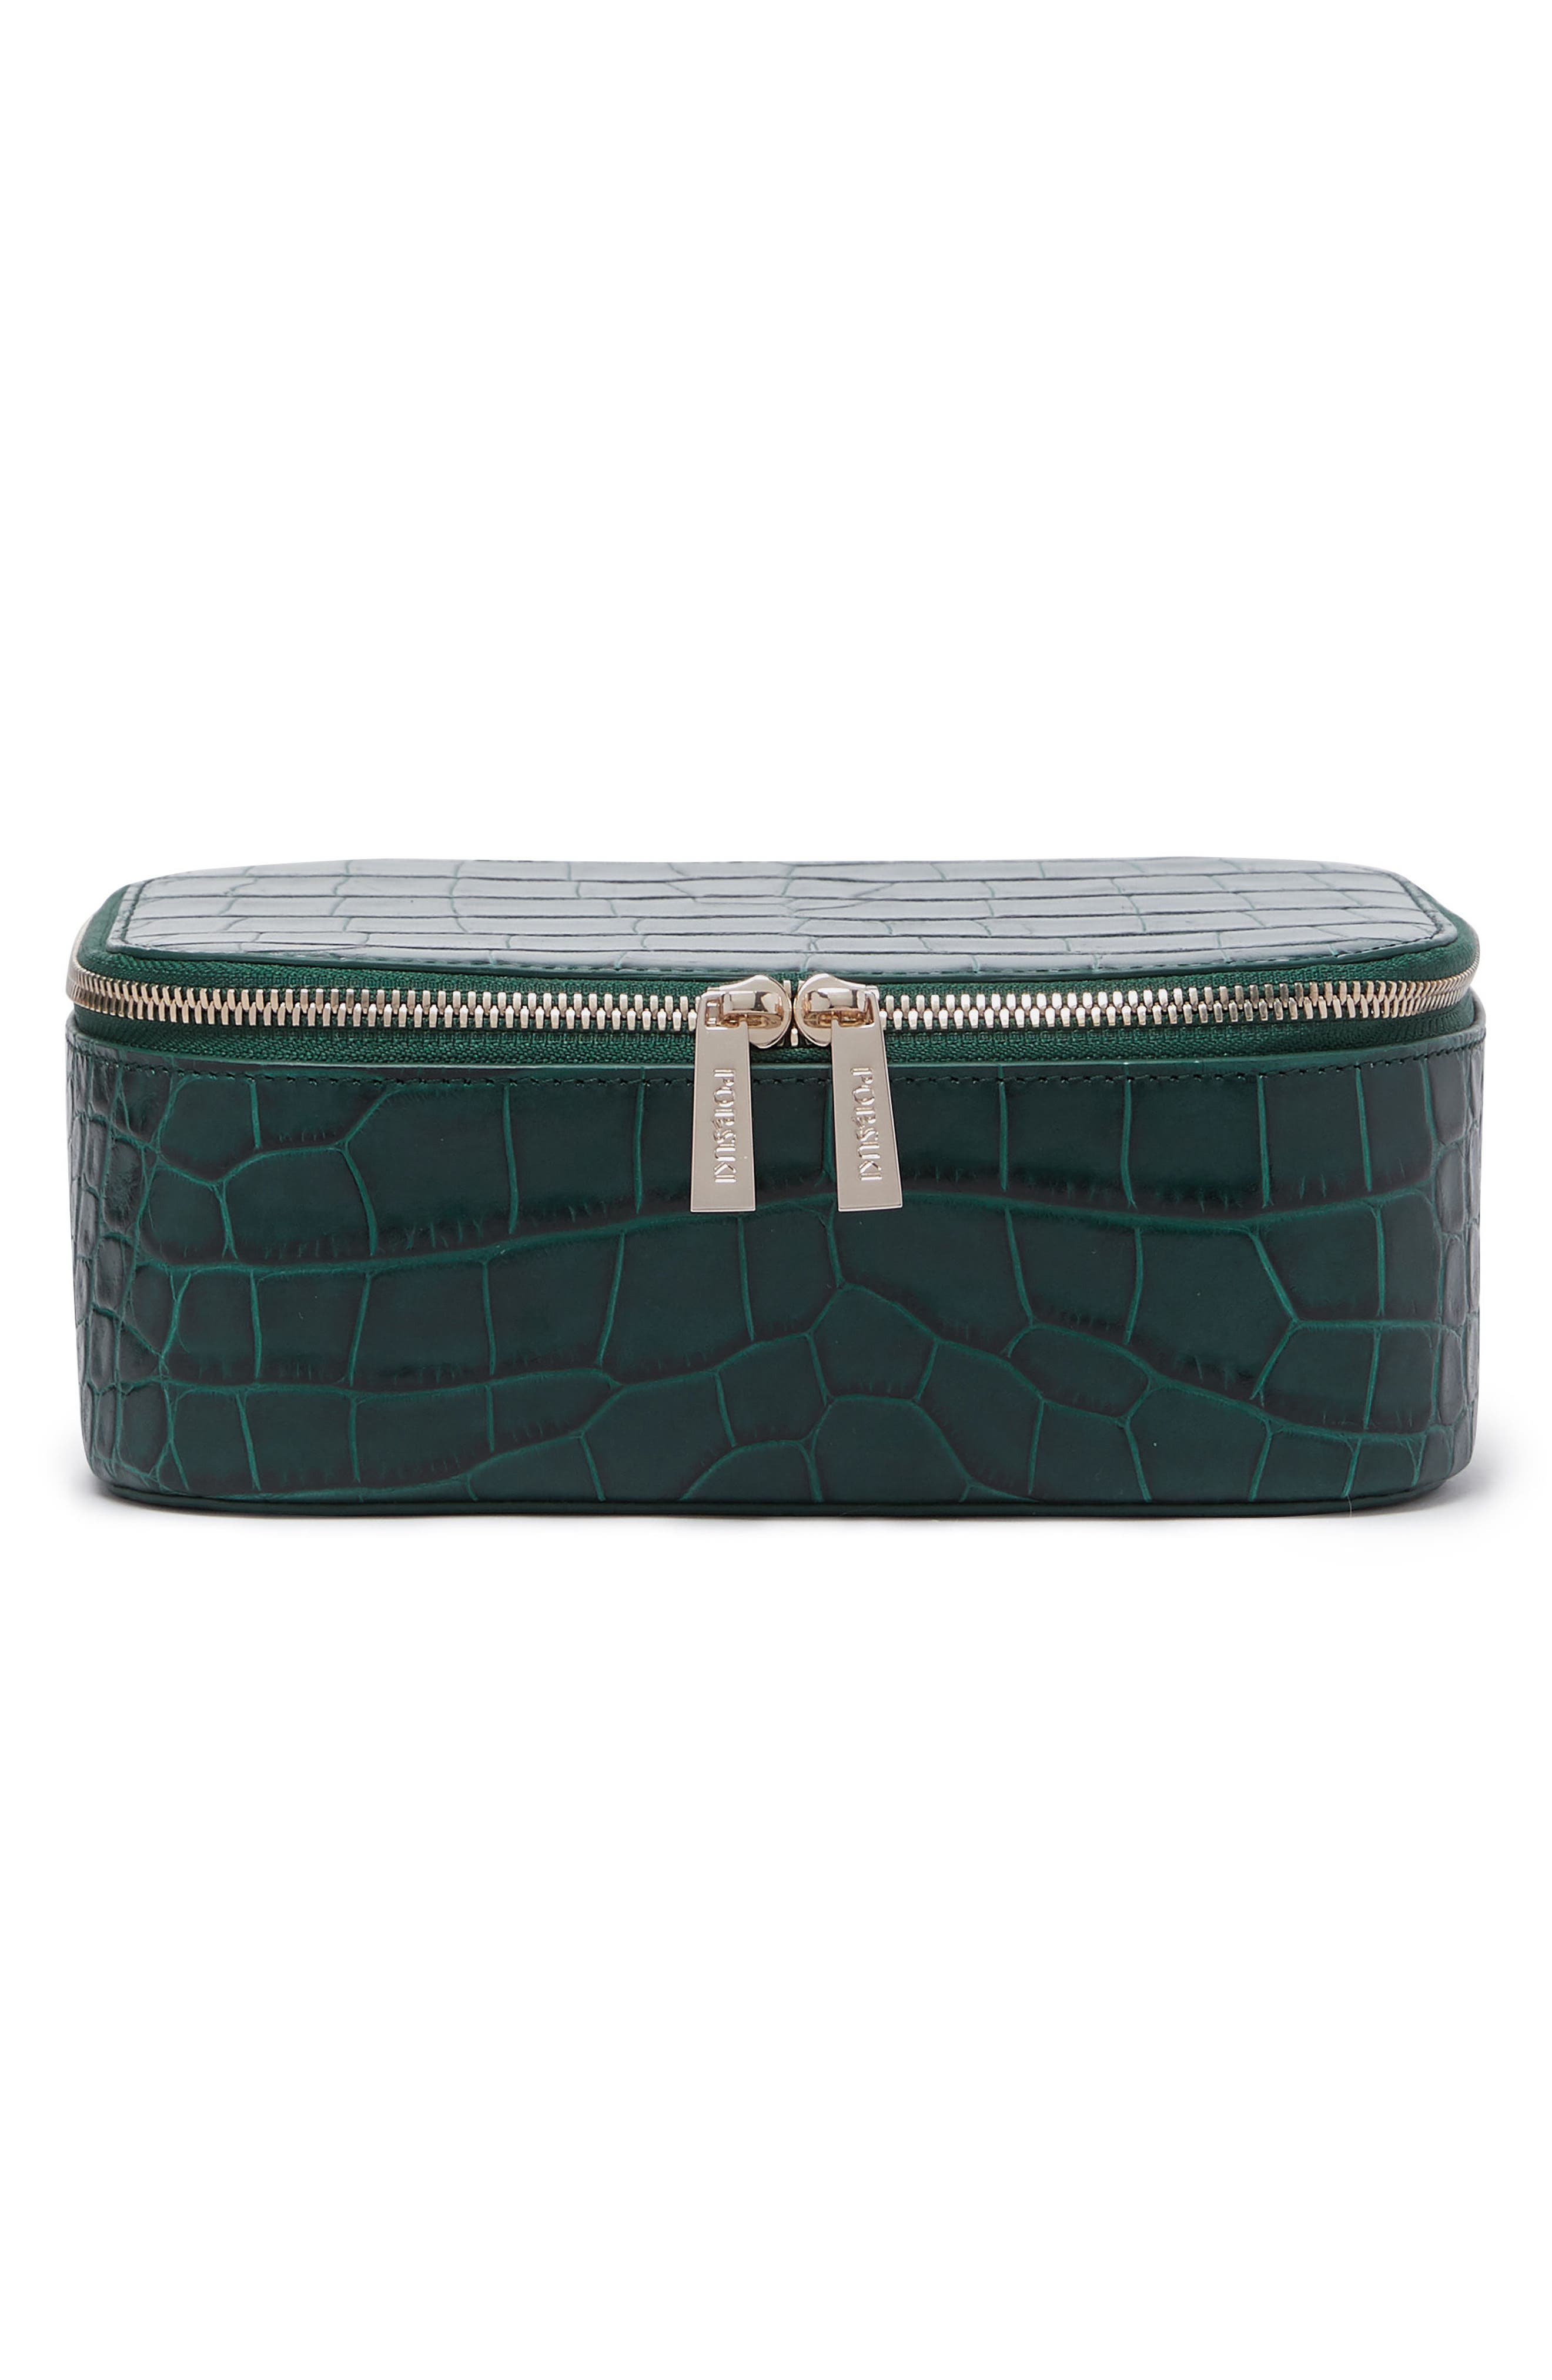 Bigger Croc Embossed Leather Makeup Case,                         Main,                         color, Emerald